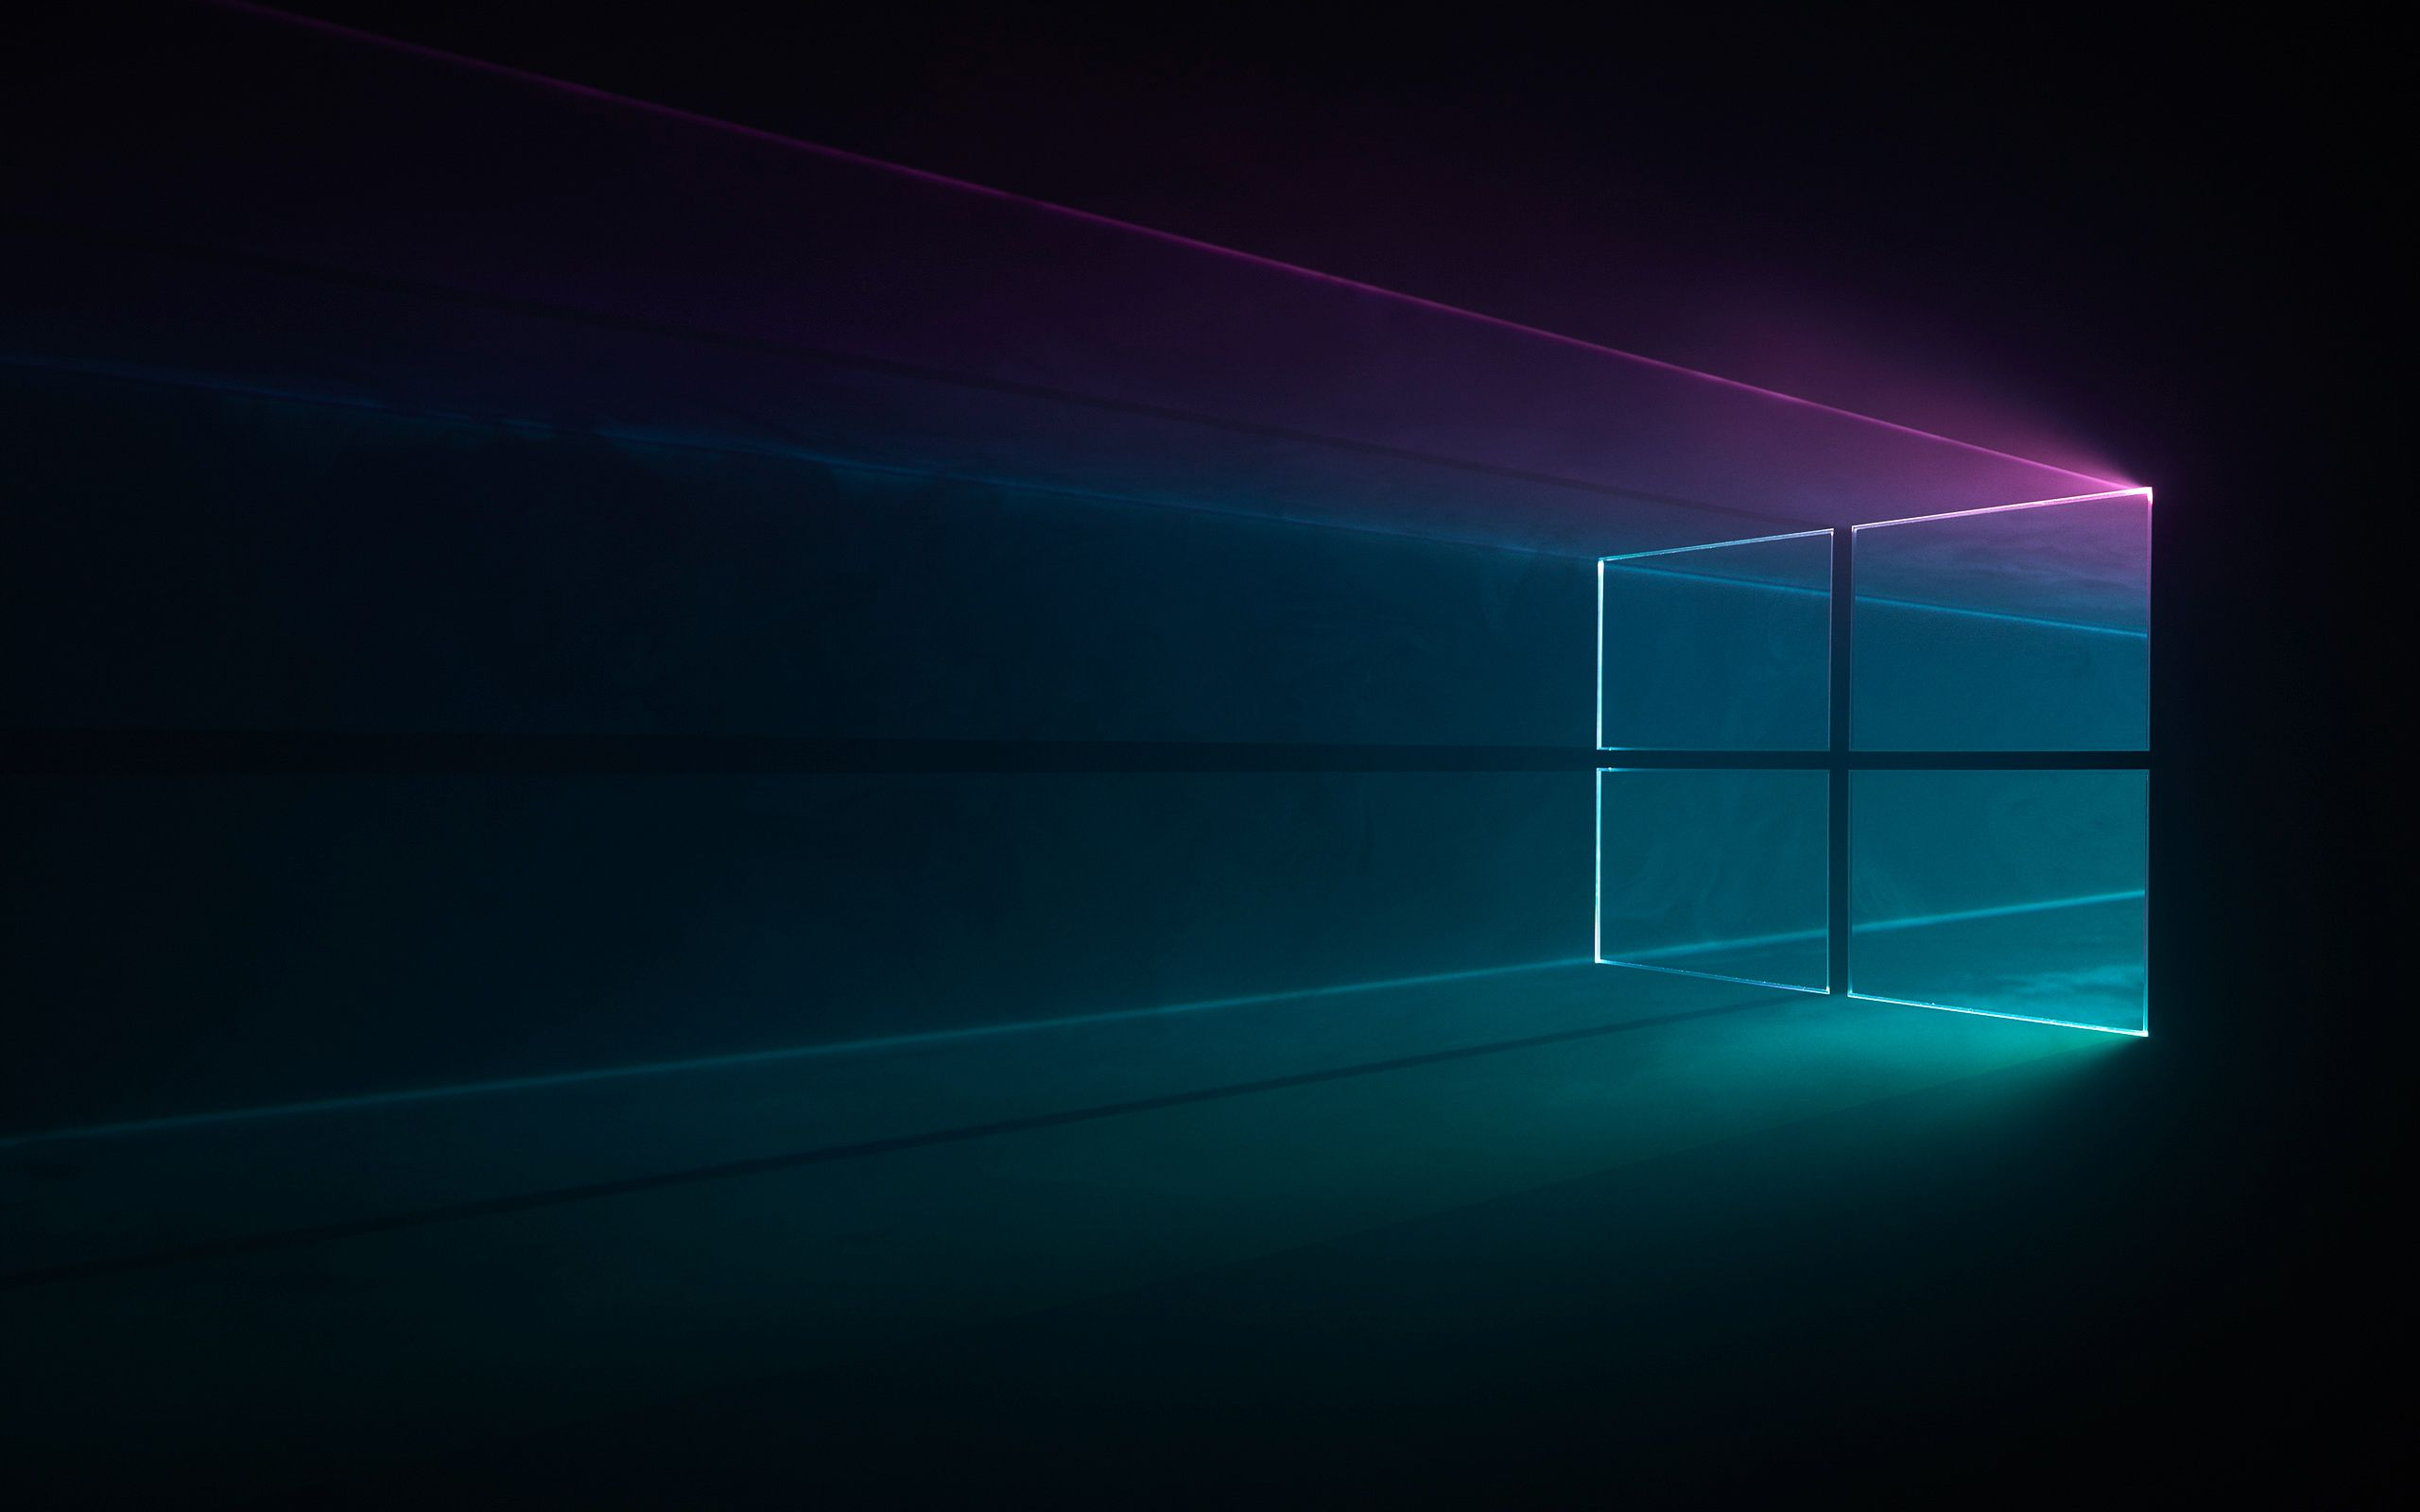 Windows 11 Hd Wallpaper 2018 Windows Wallpaper Wallpaper Windows 10 Microsoft Wallpaper